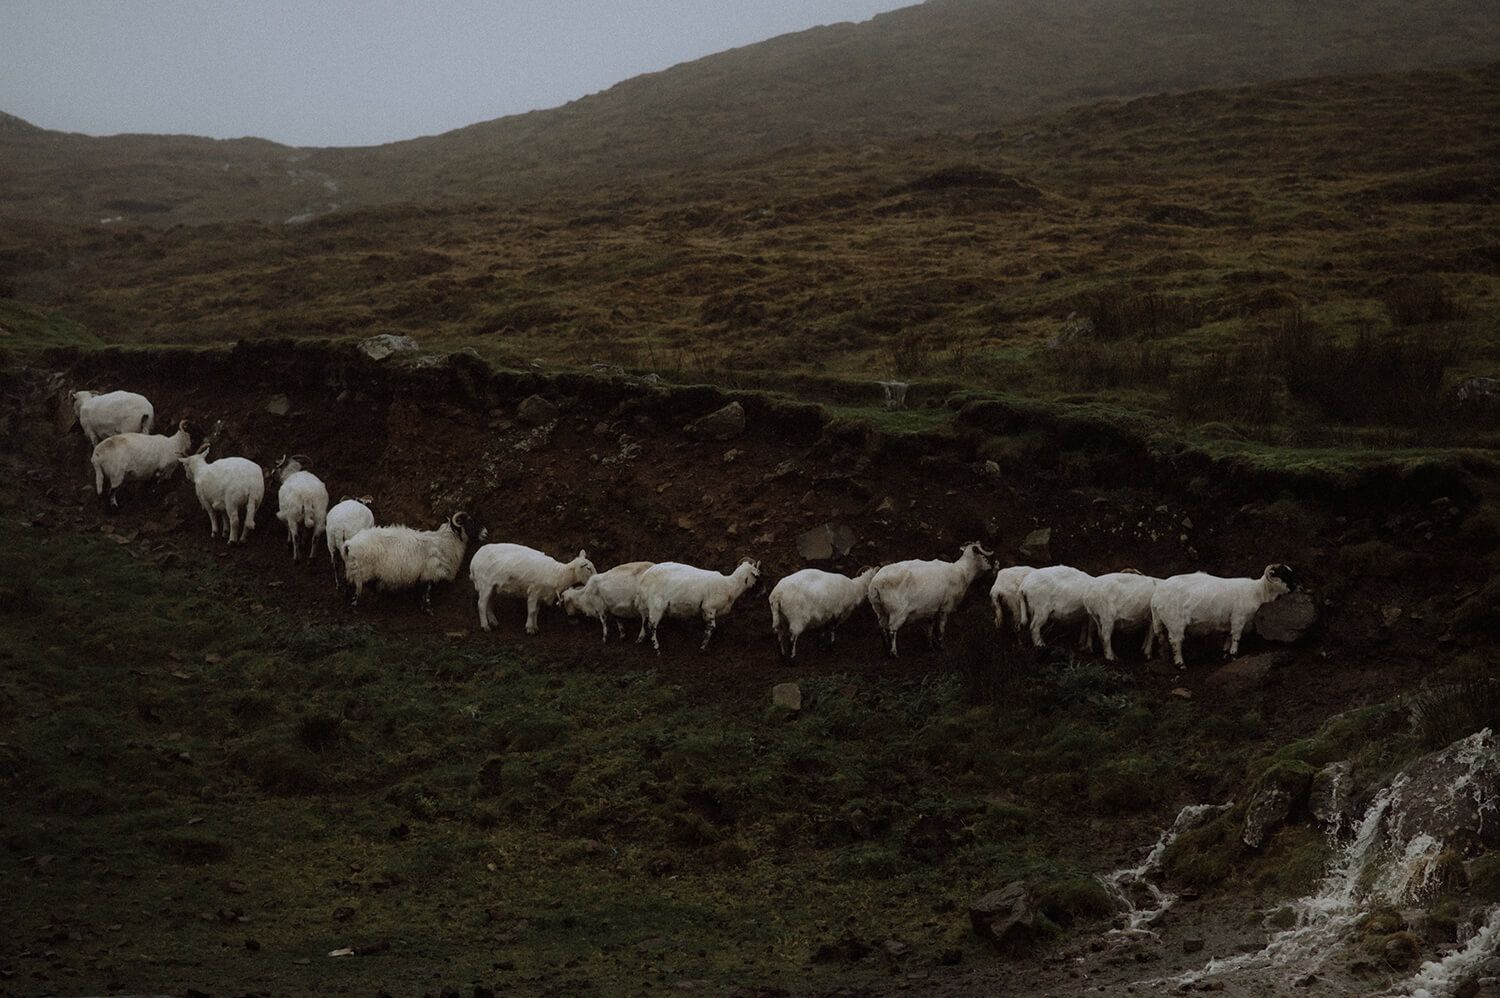 Straight line of sheep in the Scottish highlands on a rainy day.